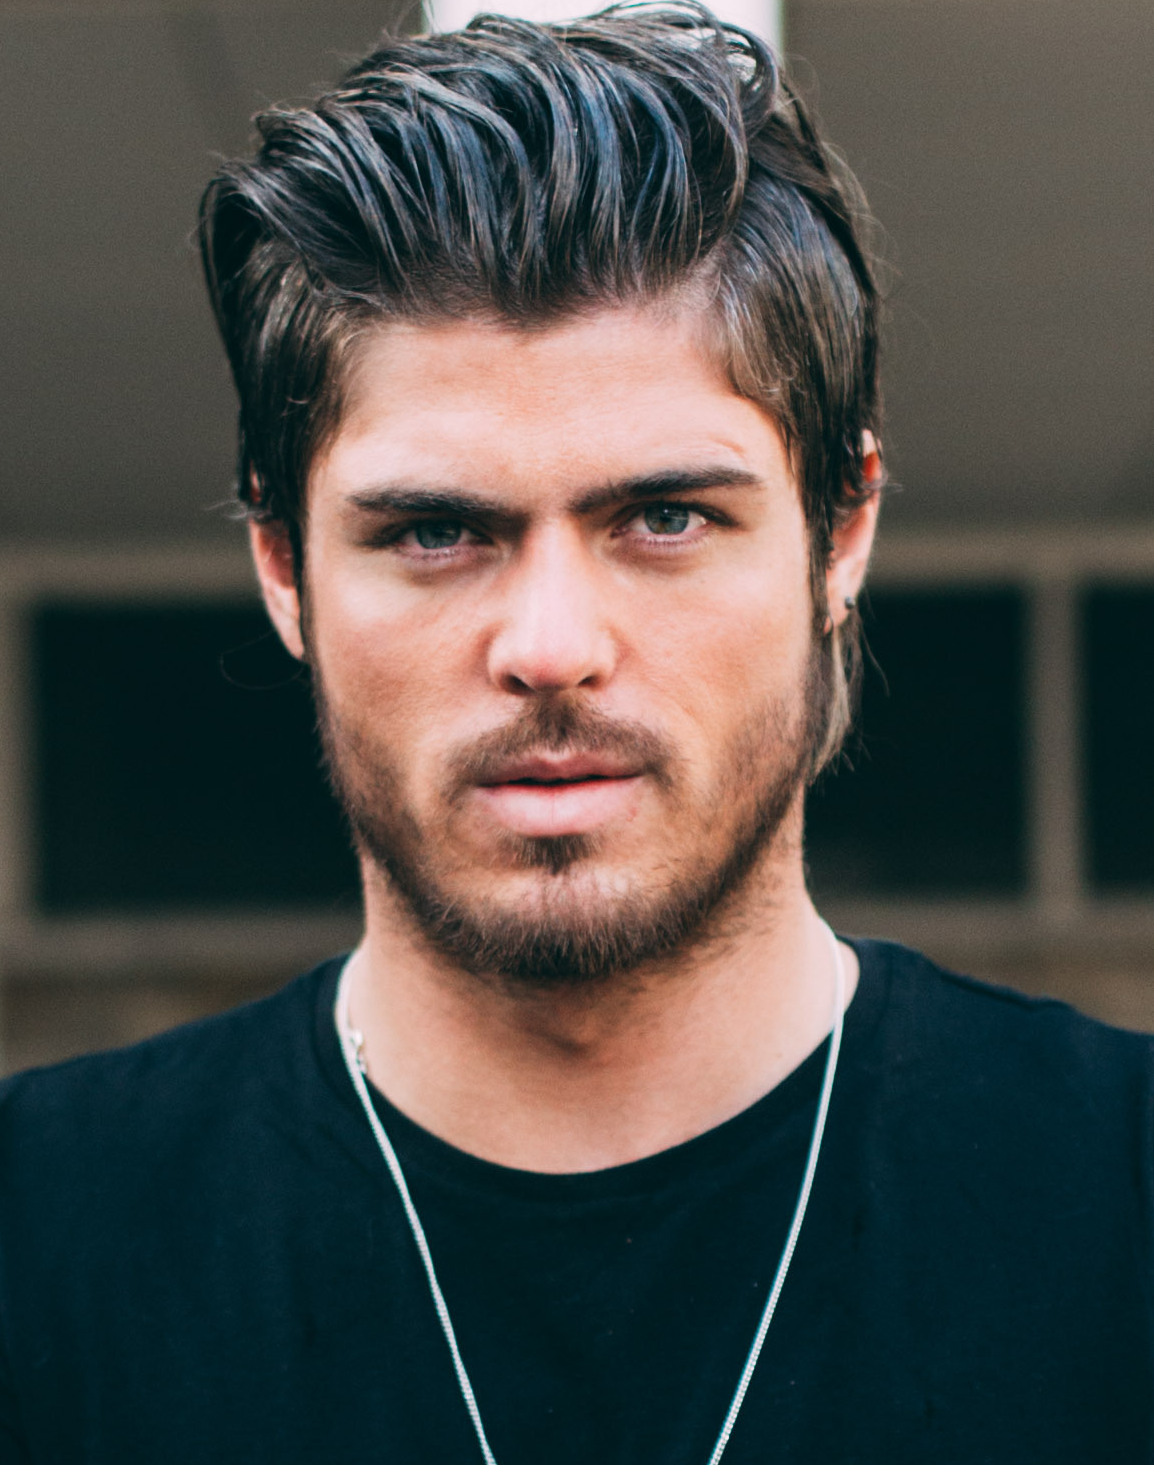 Sam Reece Headshot